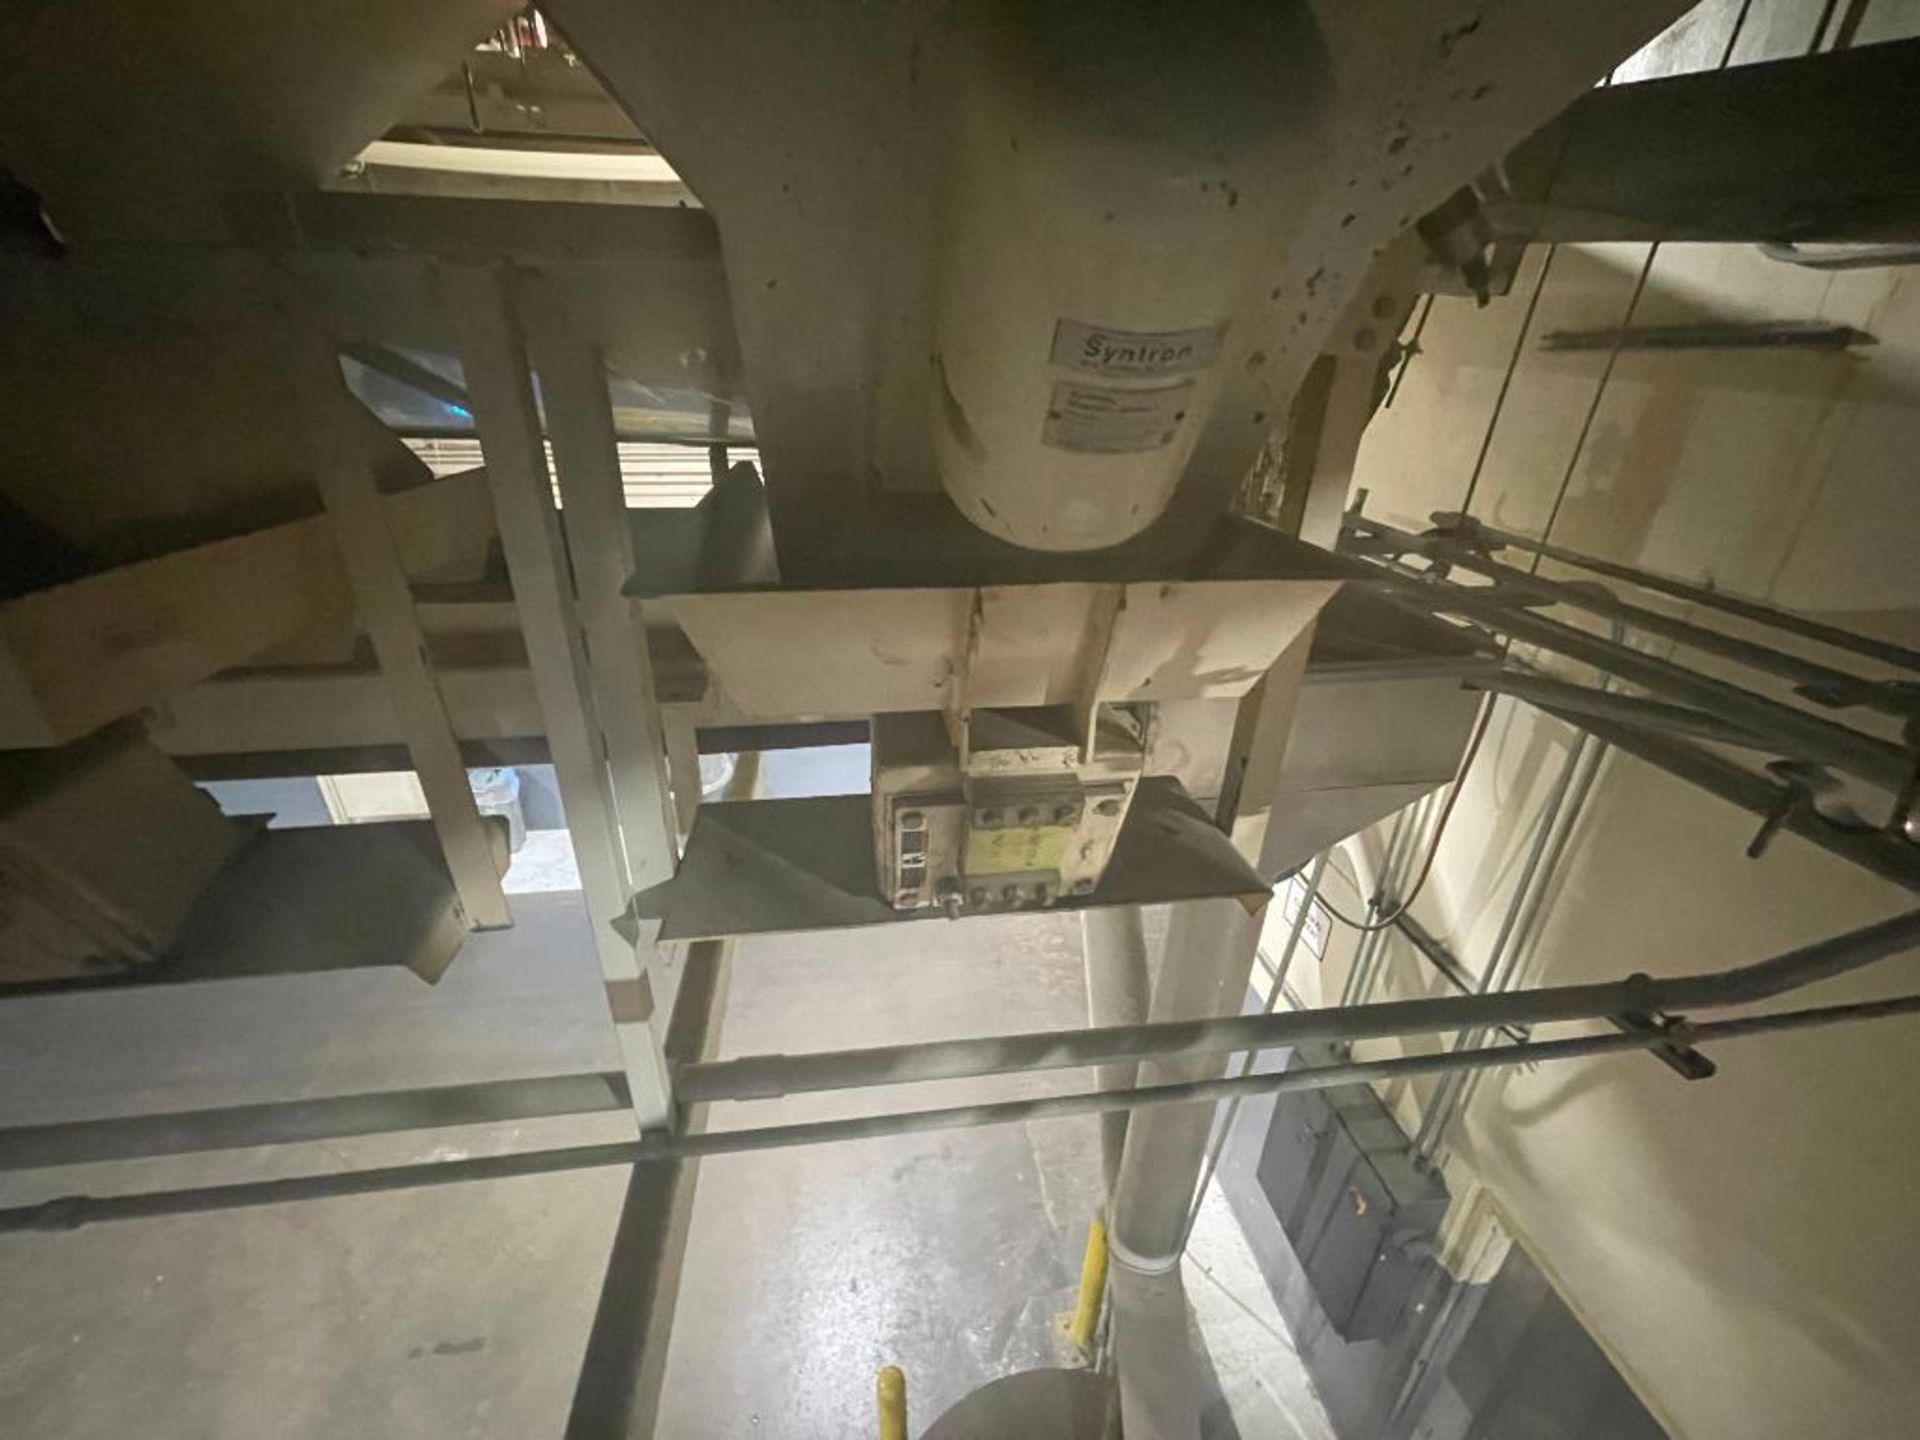 Aseeco 5-bin blending system with 5 Syntron vibratory feeders on bottom - Image 10 of 18